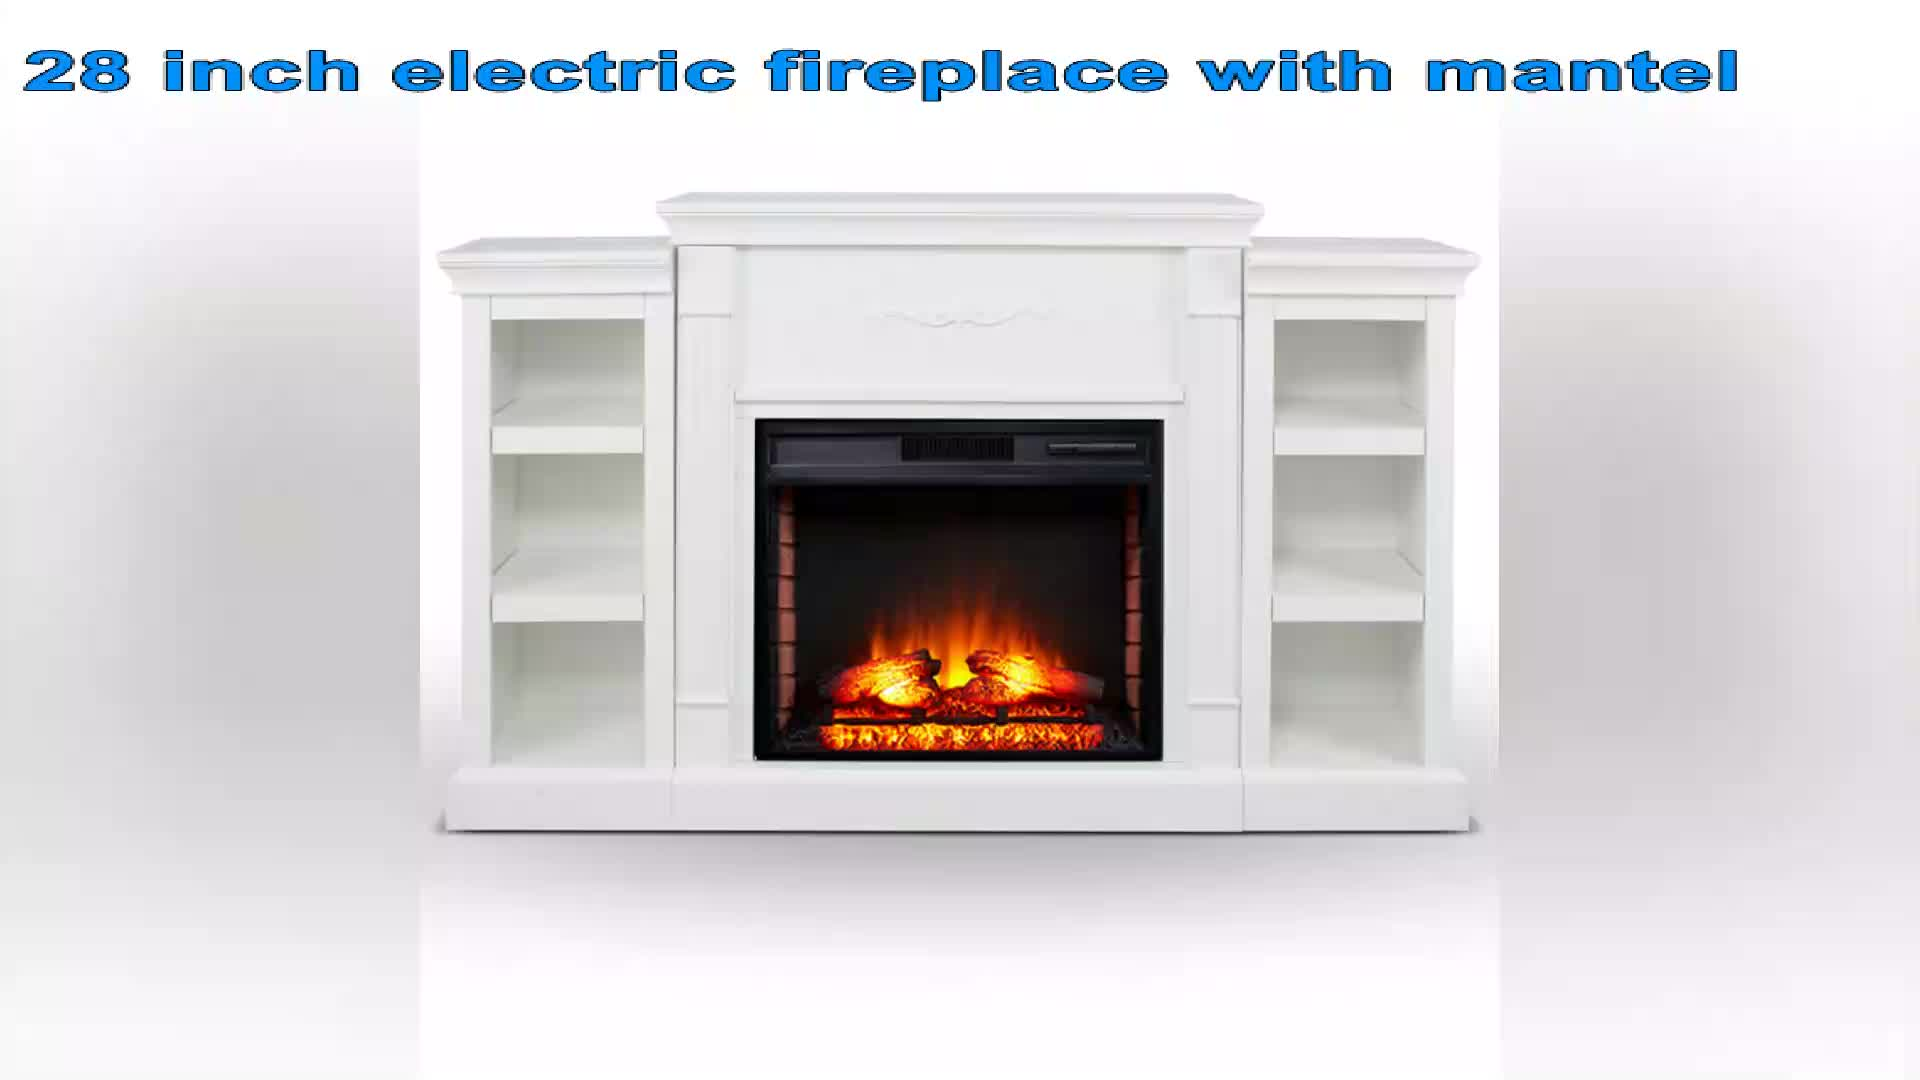 Insert Freestanding Portable Heater Stove with Remote Control Decor Home Room Indoor Realistic Flame Electric Fireplace TV